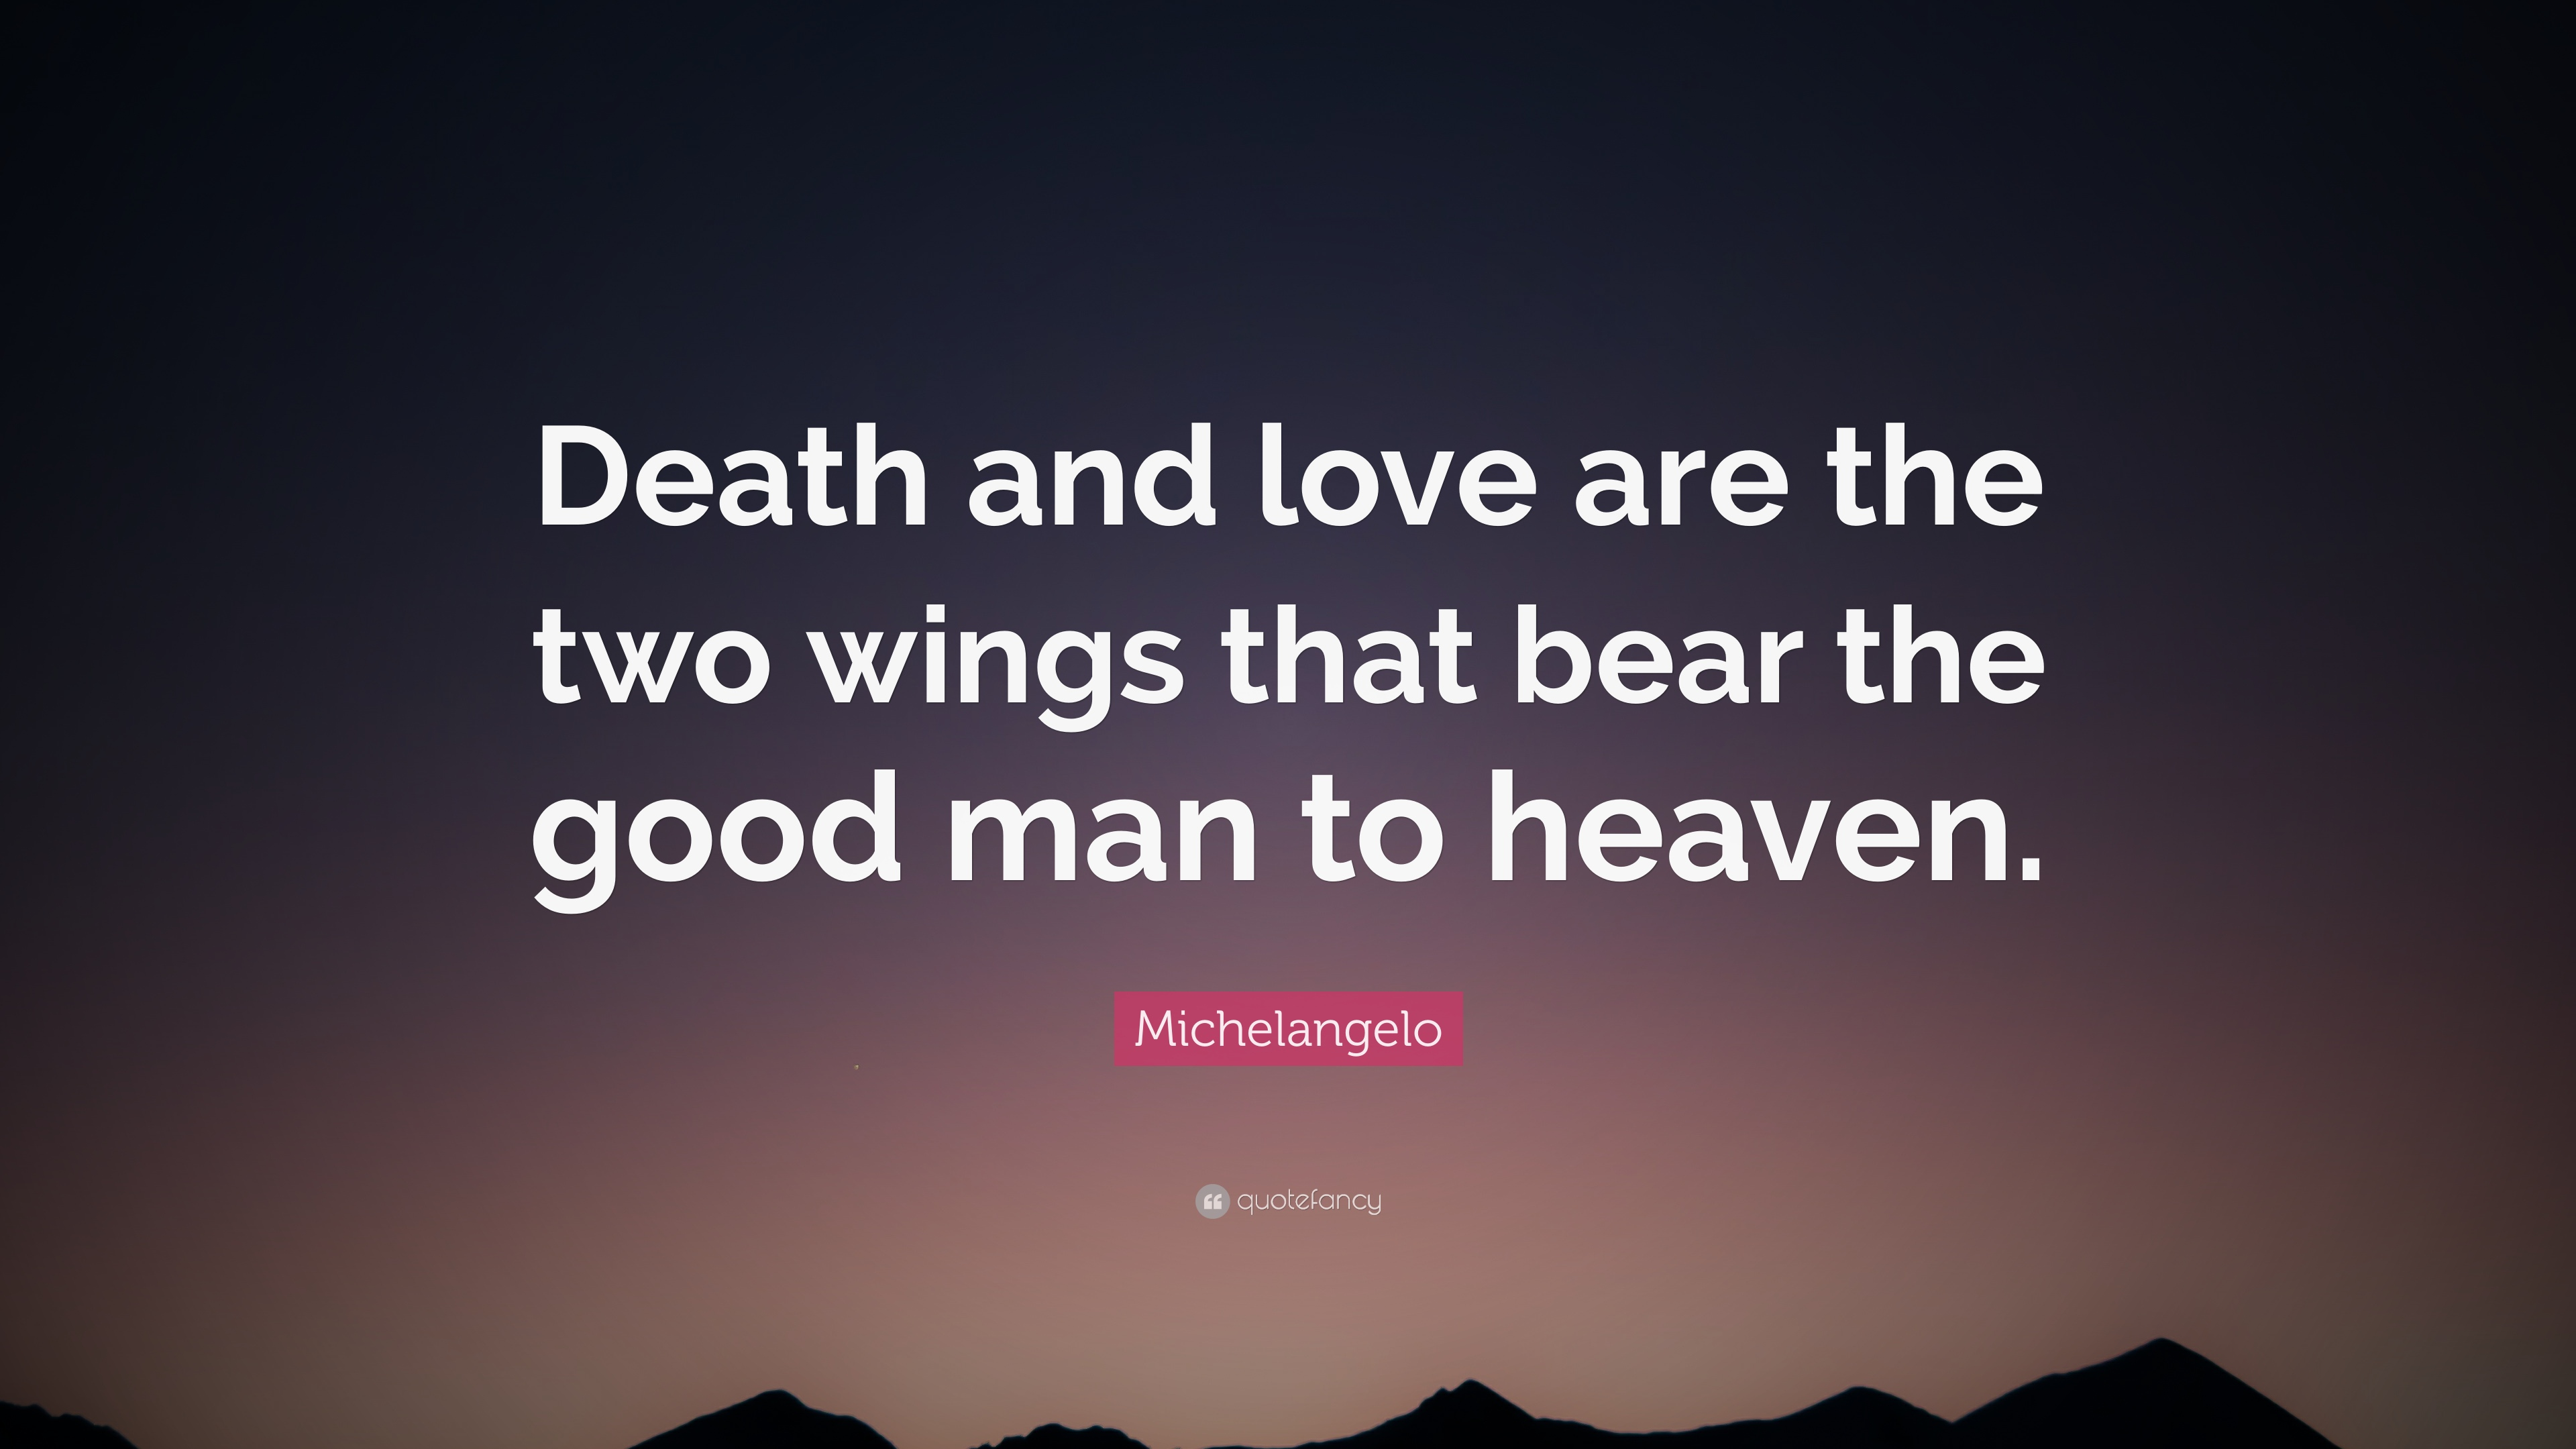 Michelangelo Quote Death And Love Are The Two Wings That Bear The Good Man